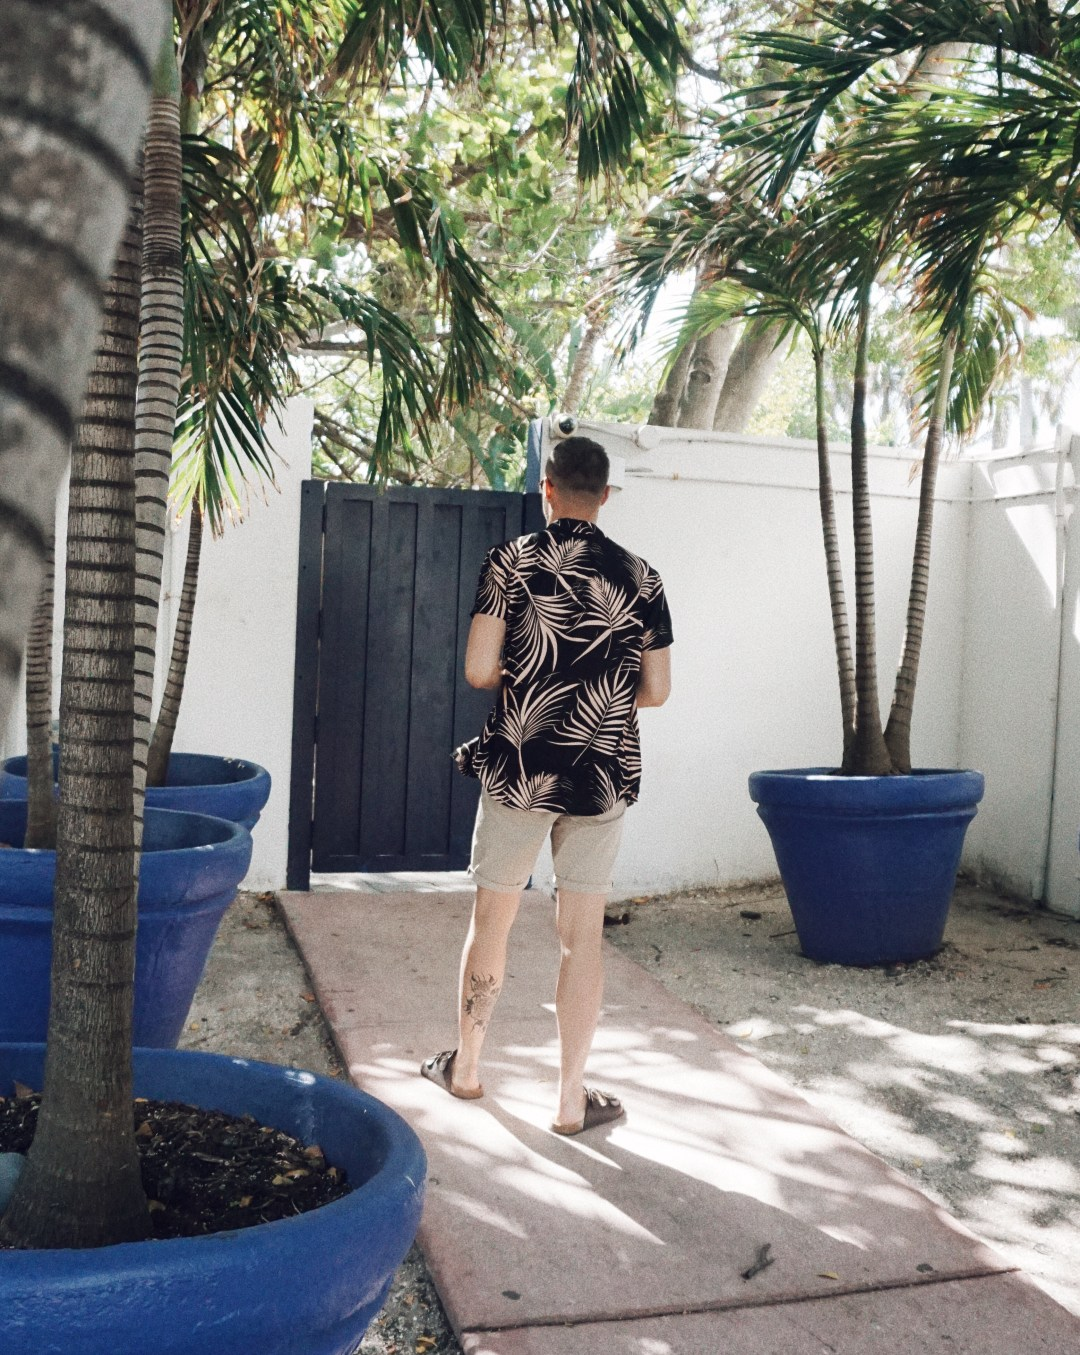 5 Style Updates for Summer by Peter Minkoff. Blog by Skirmantas Petraitis. South Beach, Miami, Florida.